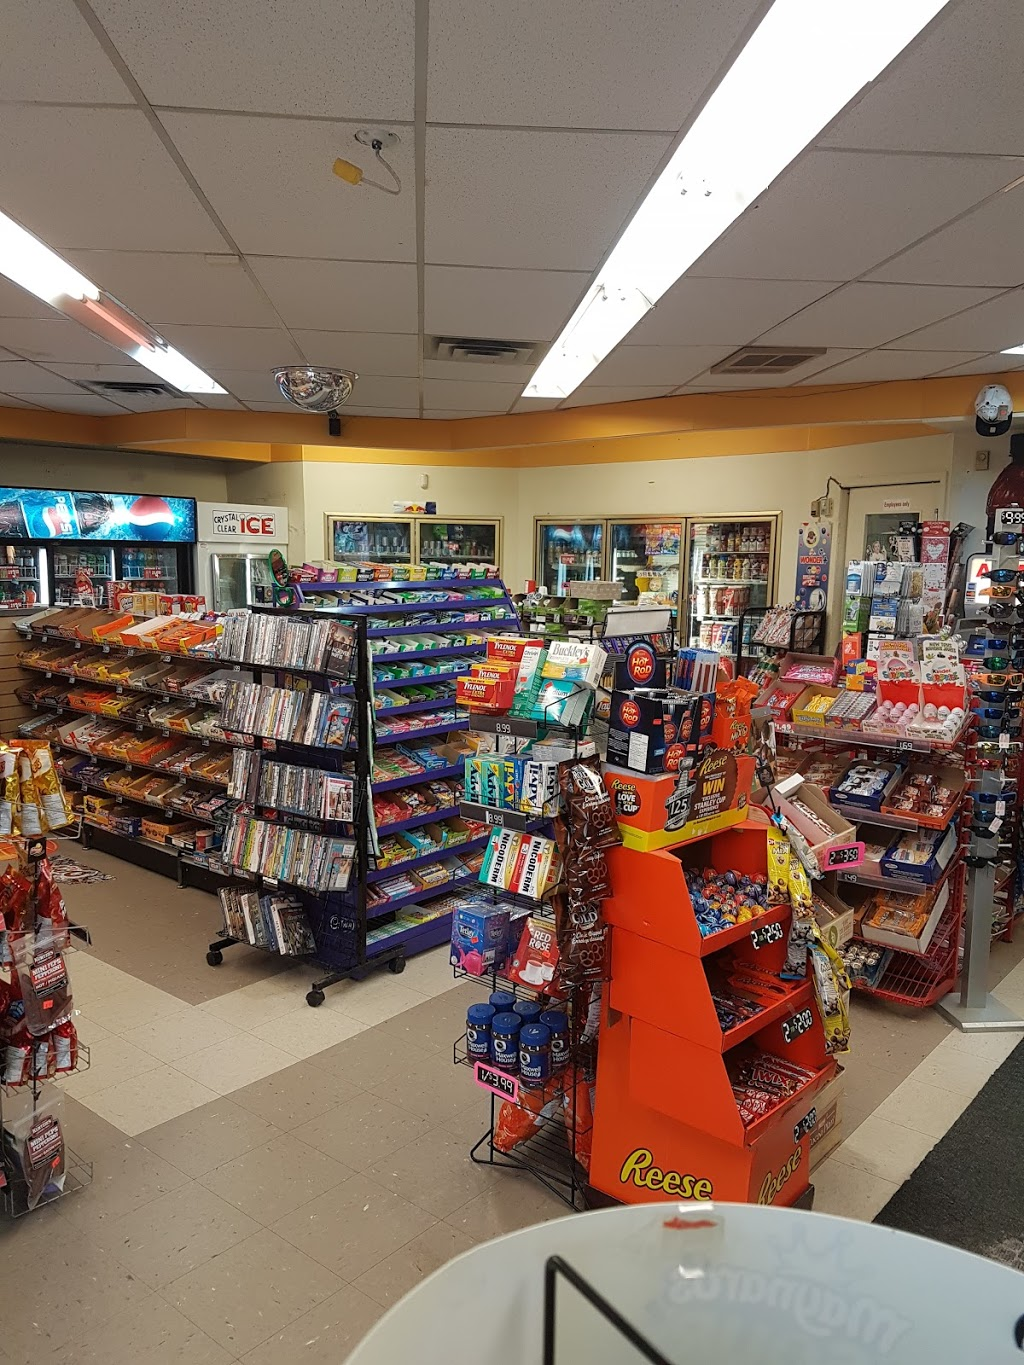 Daisy Mart   convenience store   259 Ontario St, Port Hope, ON L1A 2V9, Canada   9058859753 OR +1 905-885-9753